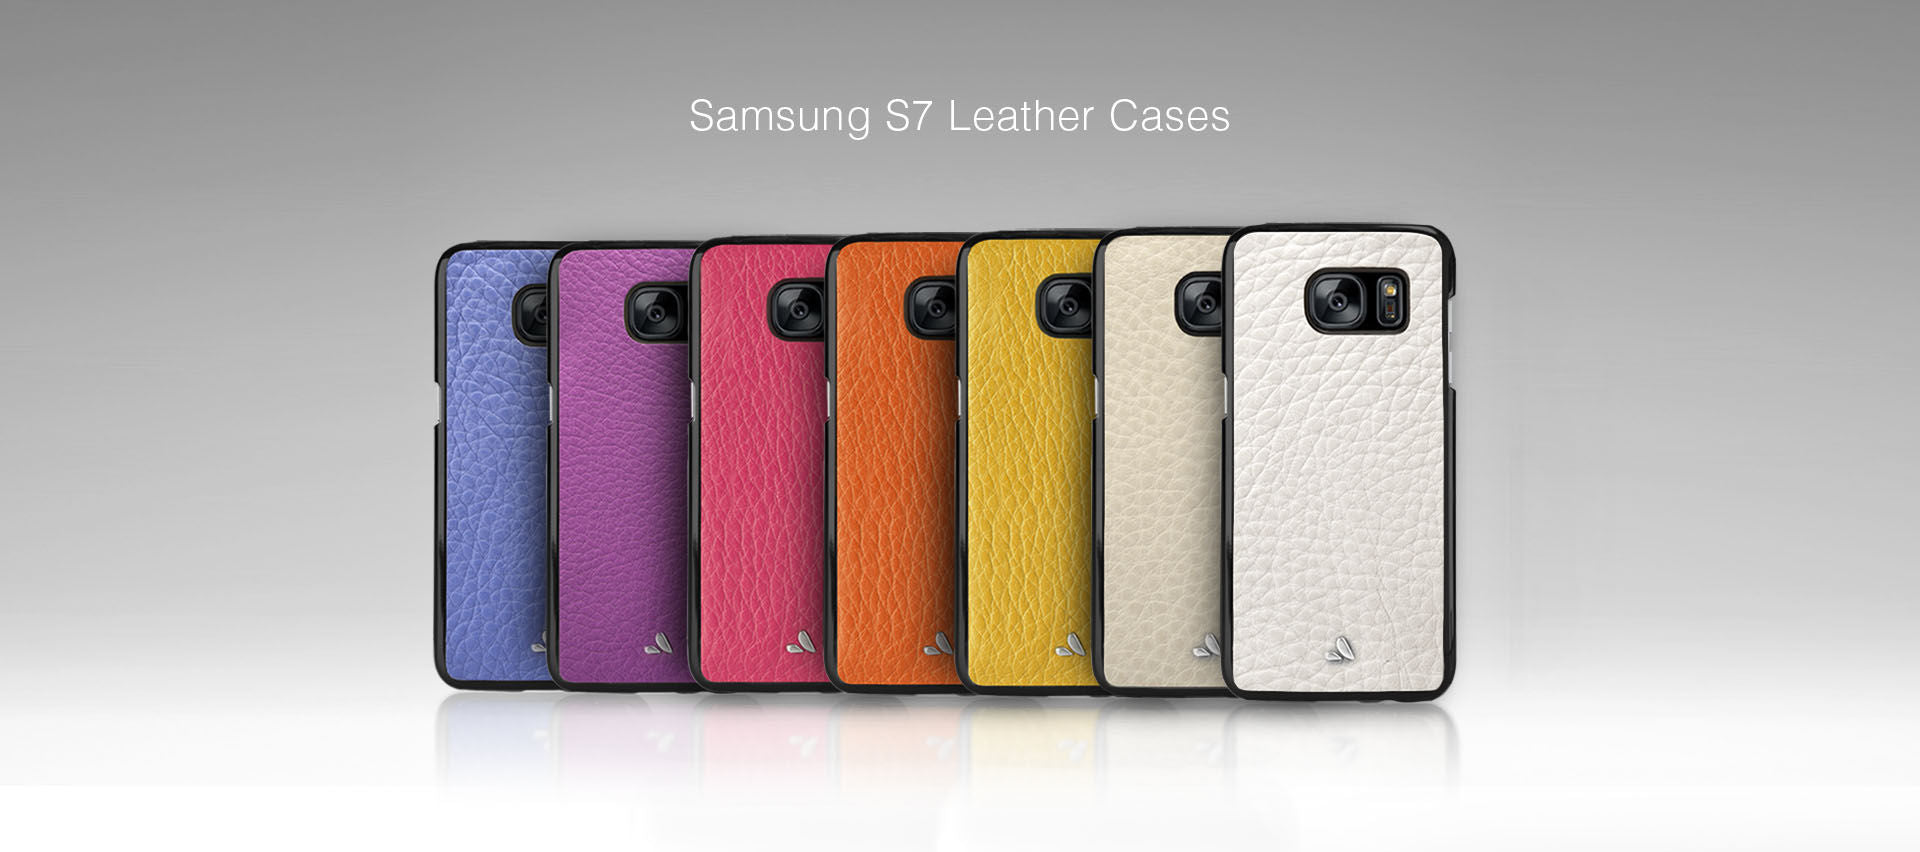 Vaja Samsung S7 Leather Cases